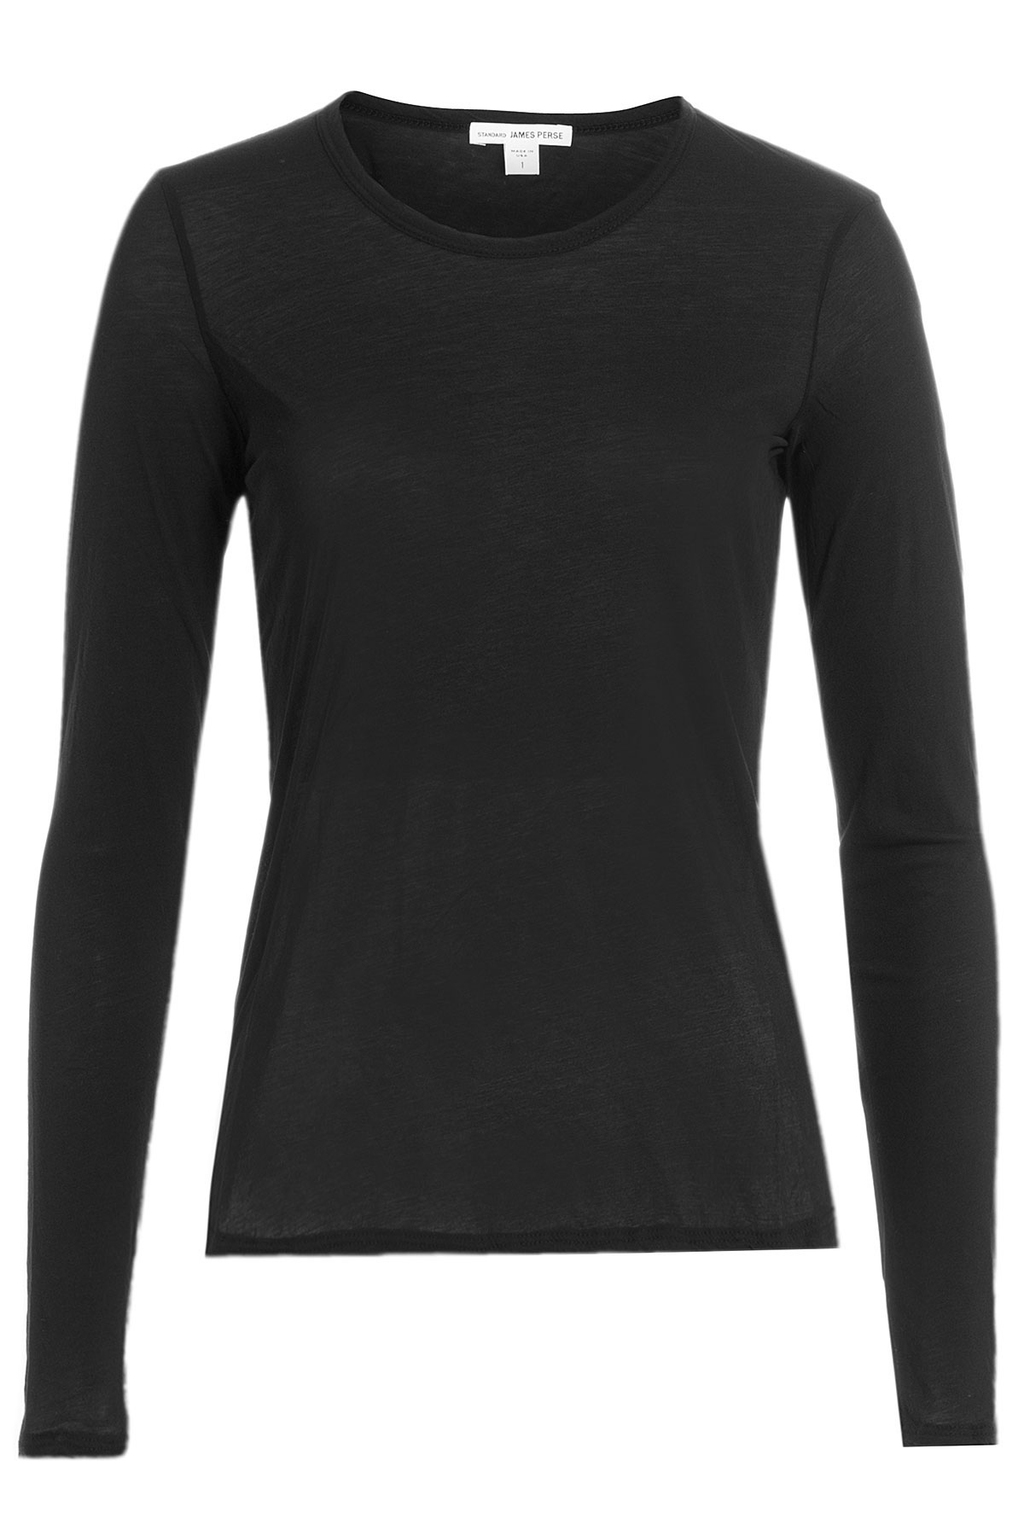 Long Sleeved Cotton Top - neckline: round neck; pattern: plain; predominant colour: black; occasions: casual, work, creative work; length: standard; style: top; fibres: cotton - 100%; fit: body skimming; sleeve length: long sleeve; sleeve style: standard; pattern type: fabric; texture group: jersey - stretchy/drapey; wardrobe: basic; season: a/w 2016